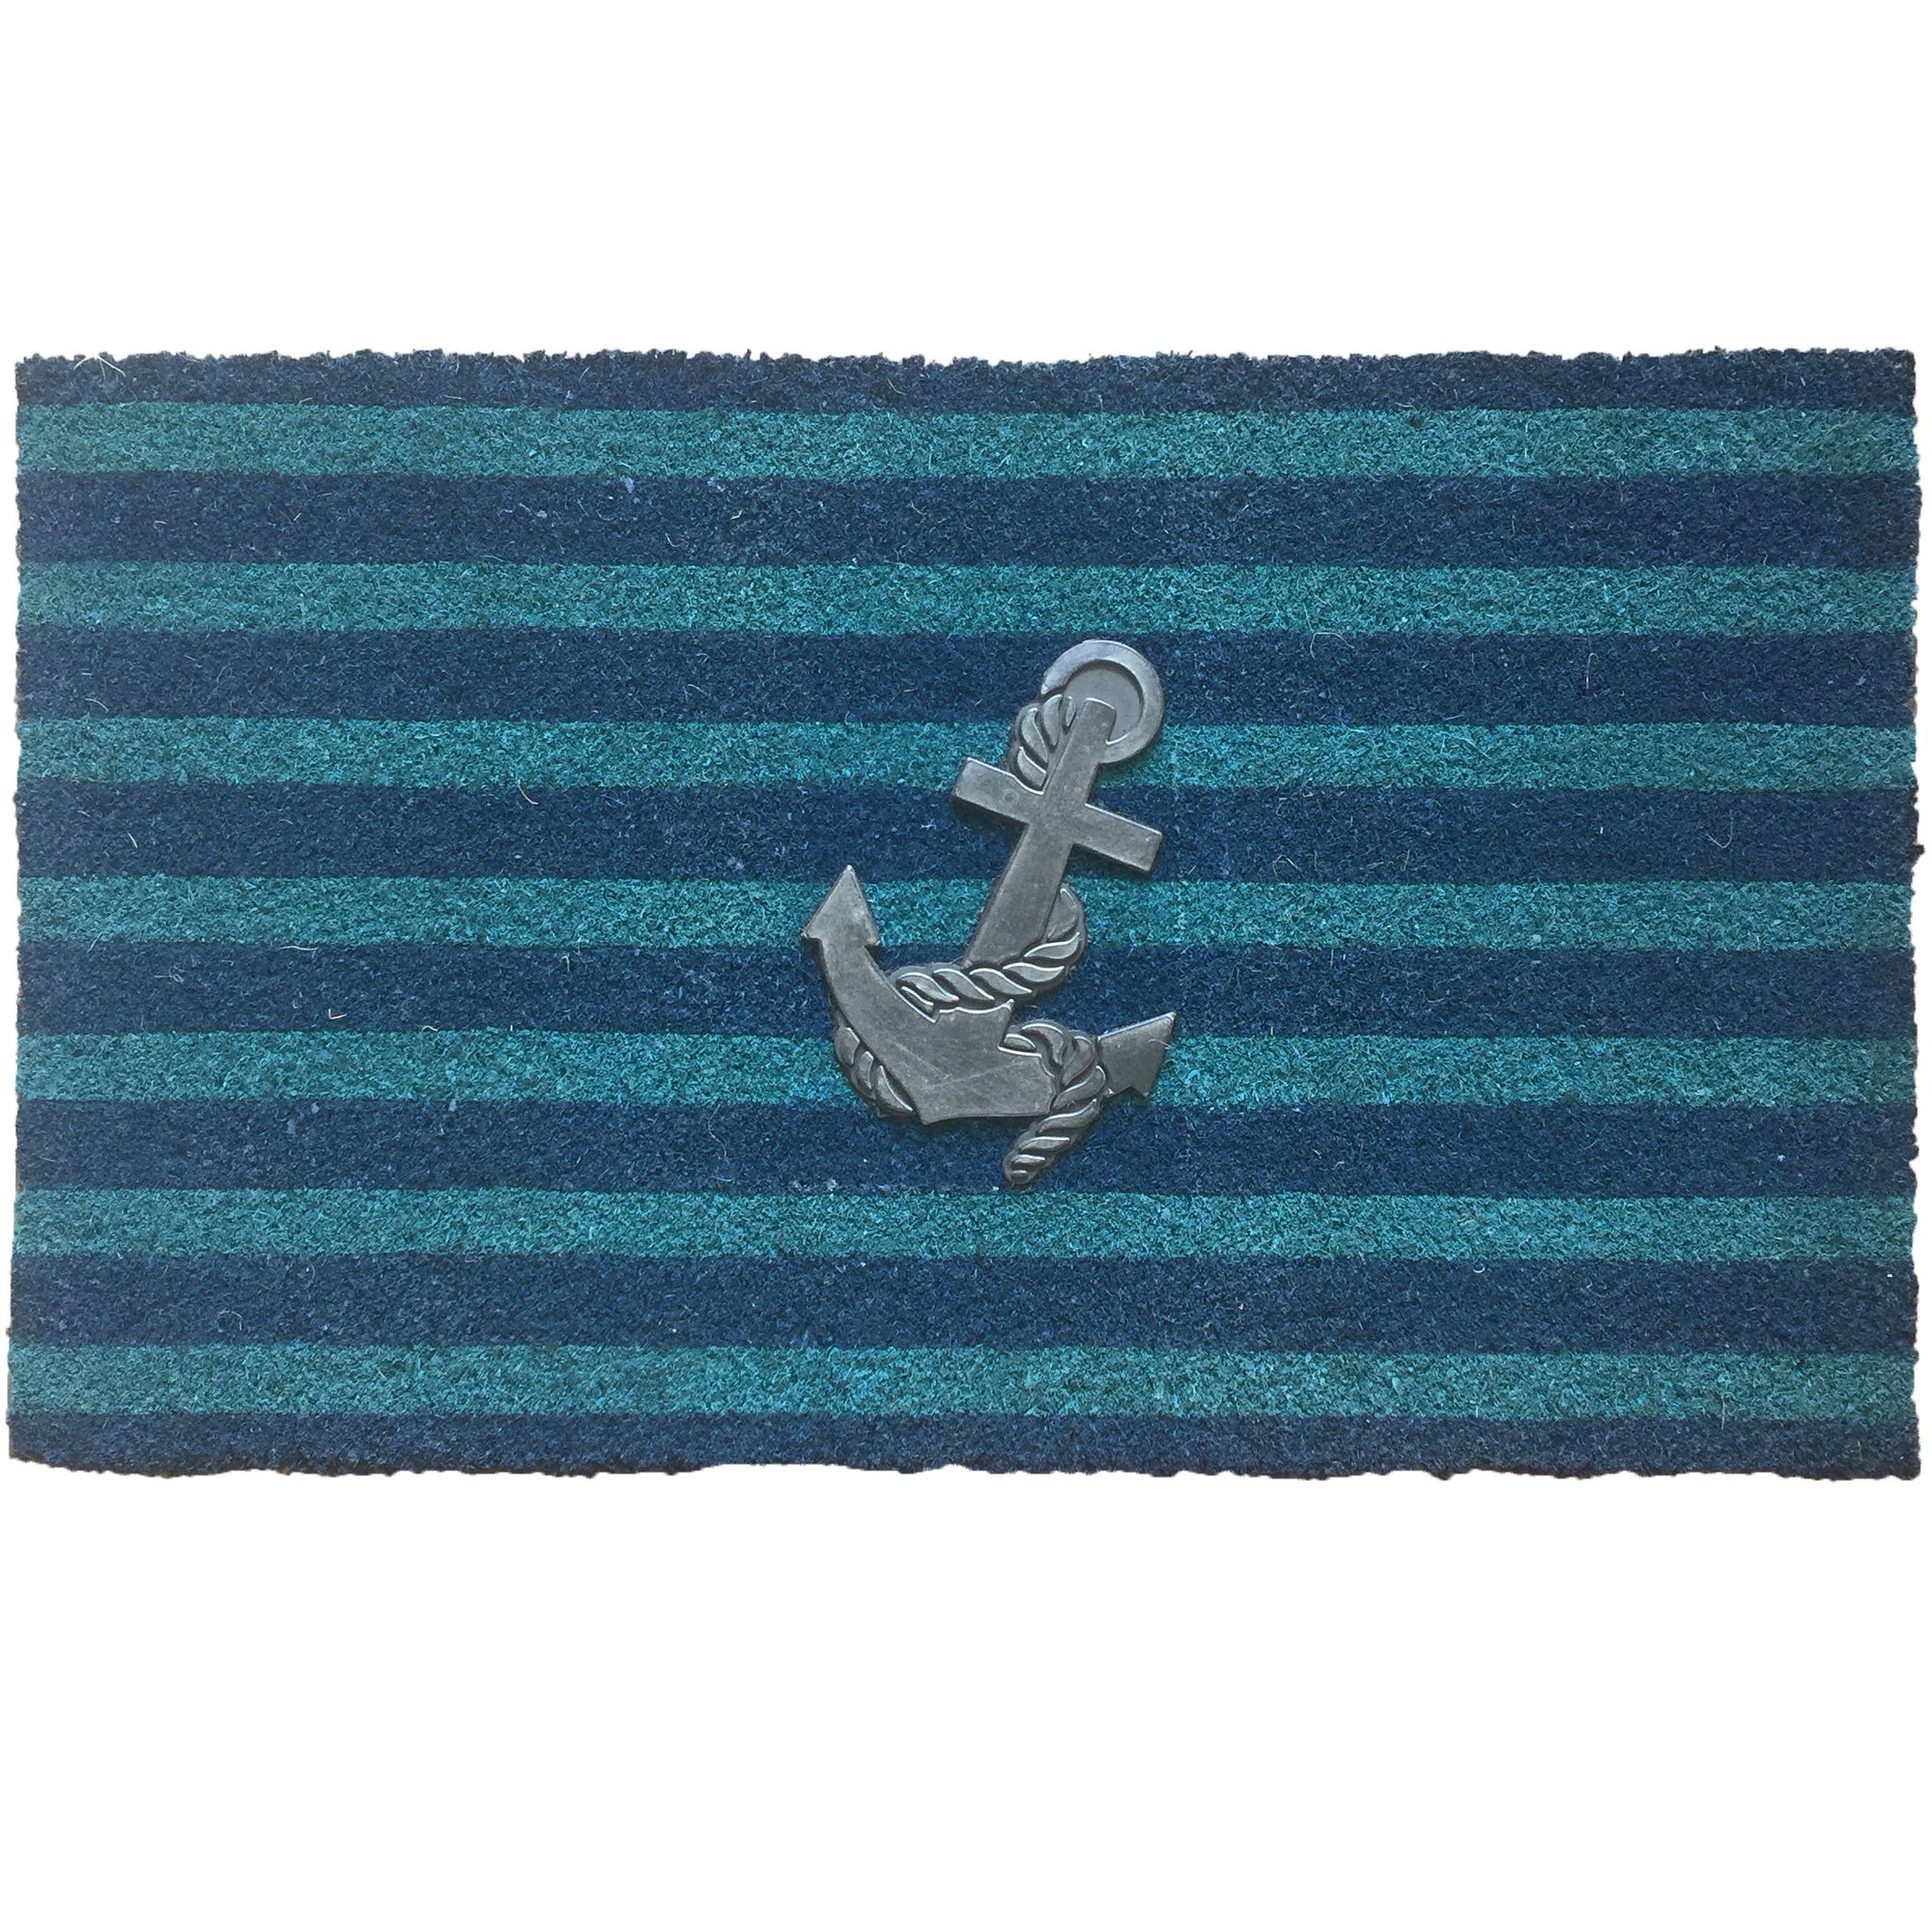 Blue Stripe Anchor Doormat